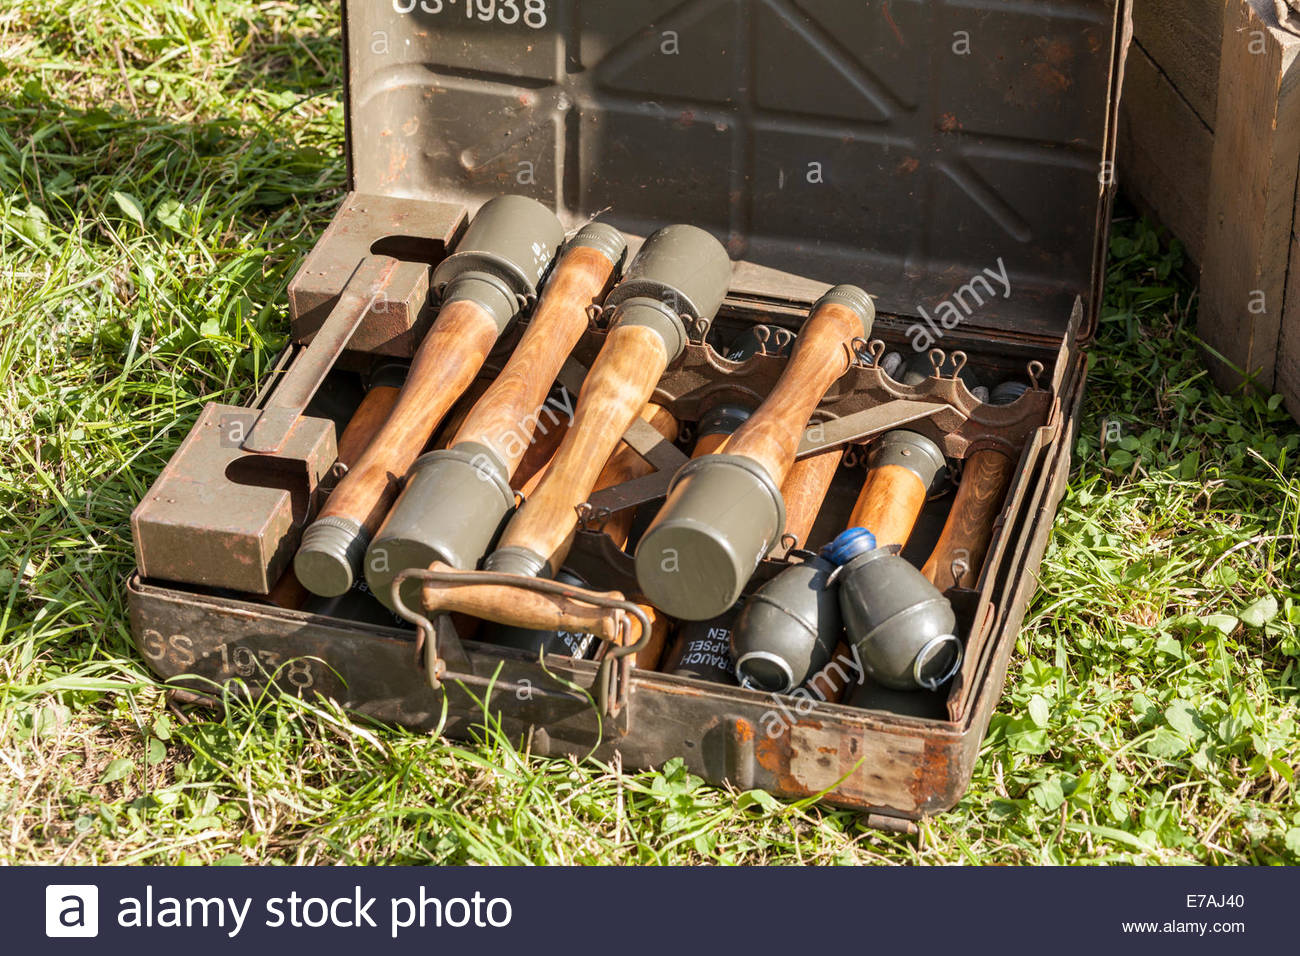 German grenades on show at a World War Two re-enactment - Stock Image